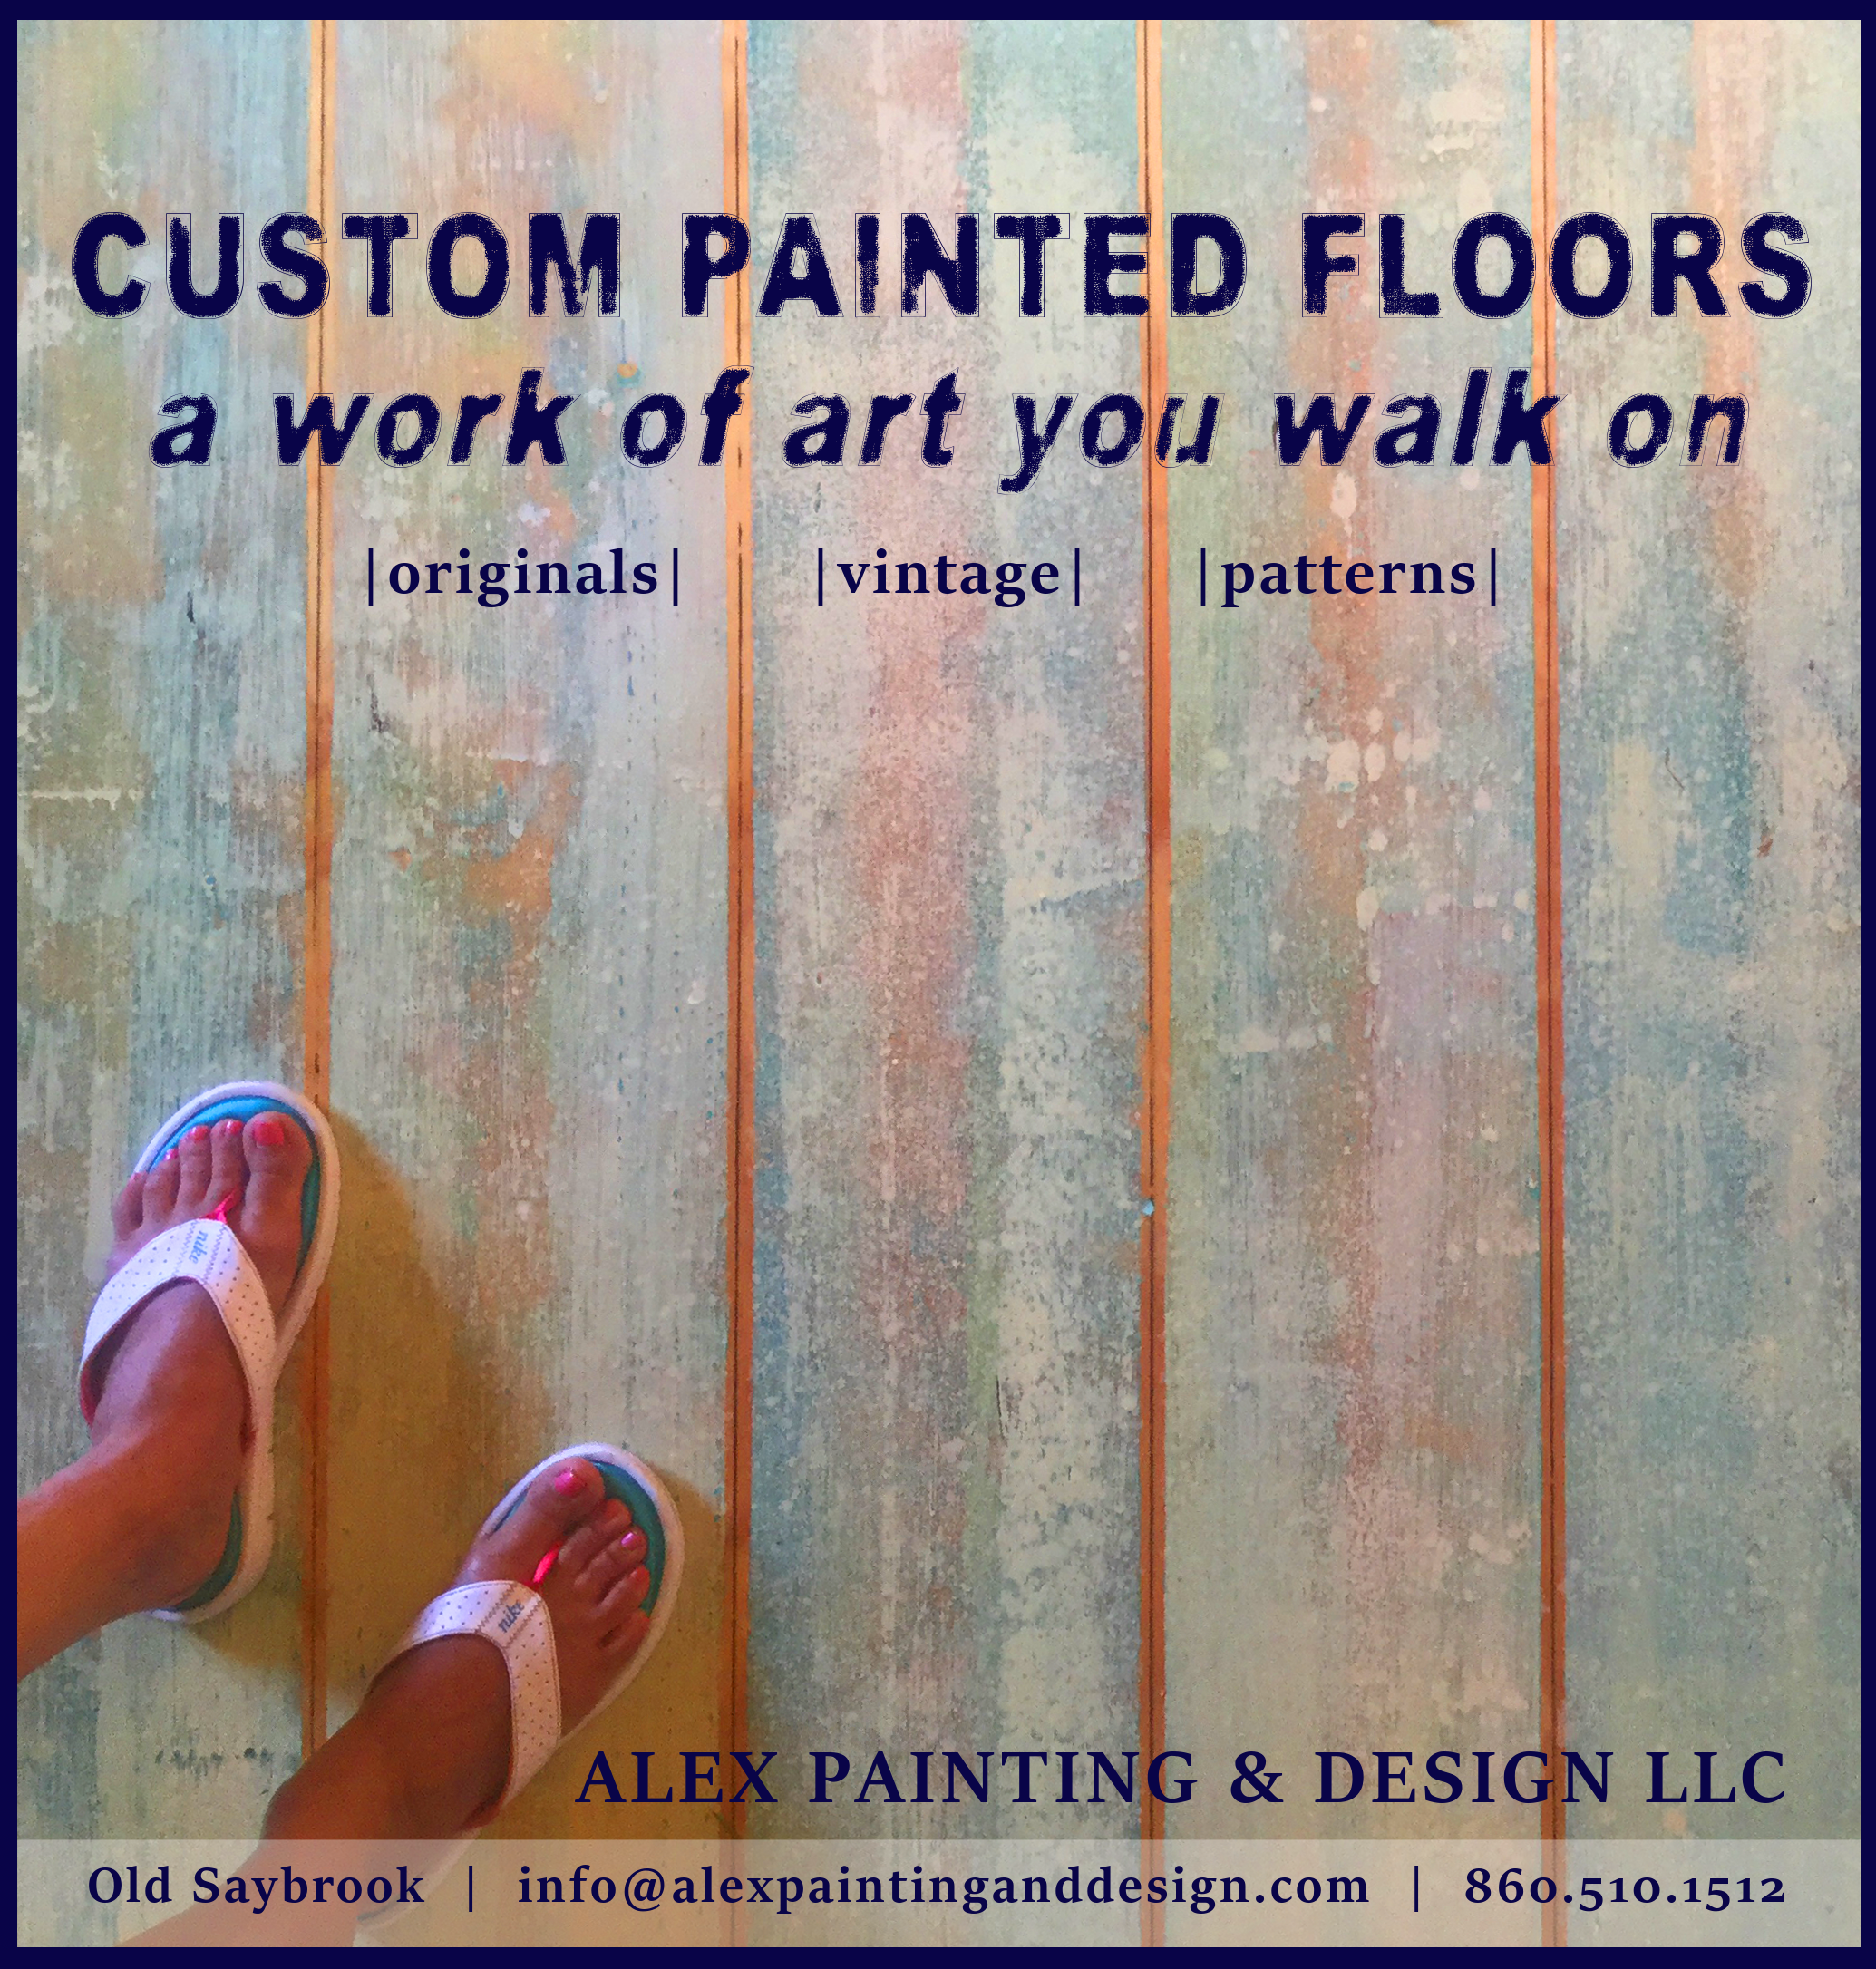 Custom painted floors and walls! We can do any of the following techniques along with custom designs, faux finishes on any surface, and murals! Alex Painting & Design LLC is run by artist Andria Alex. Call for more info 860.510.1512 -